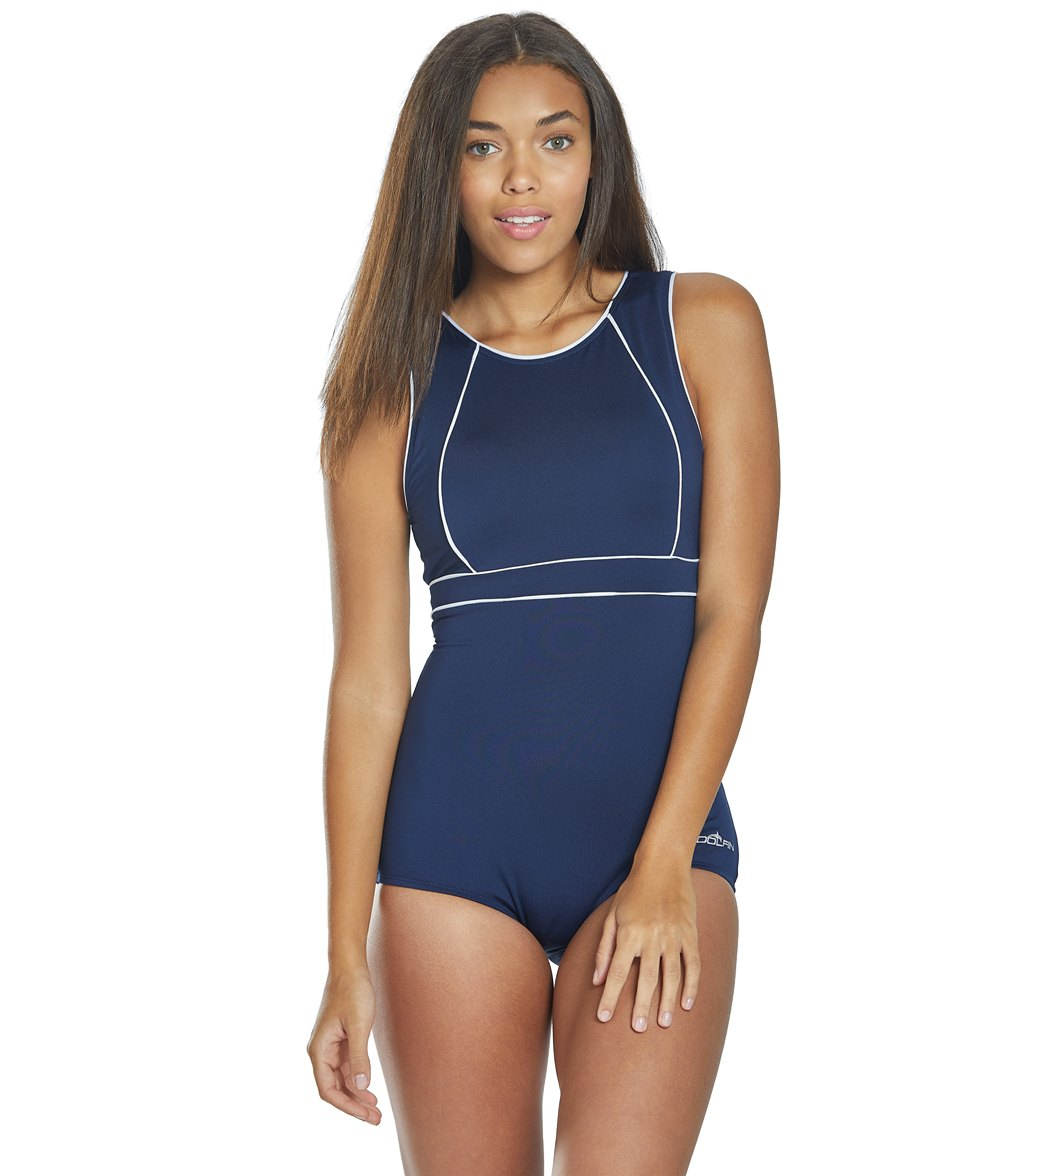 Dolfin Women S Aquashape Solid Conservative High Neck Chlorine Resistant One Piece Swimsuit At Swimoutlet Com Free Shipping